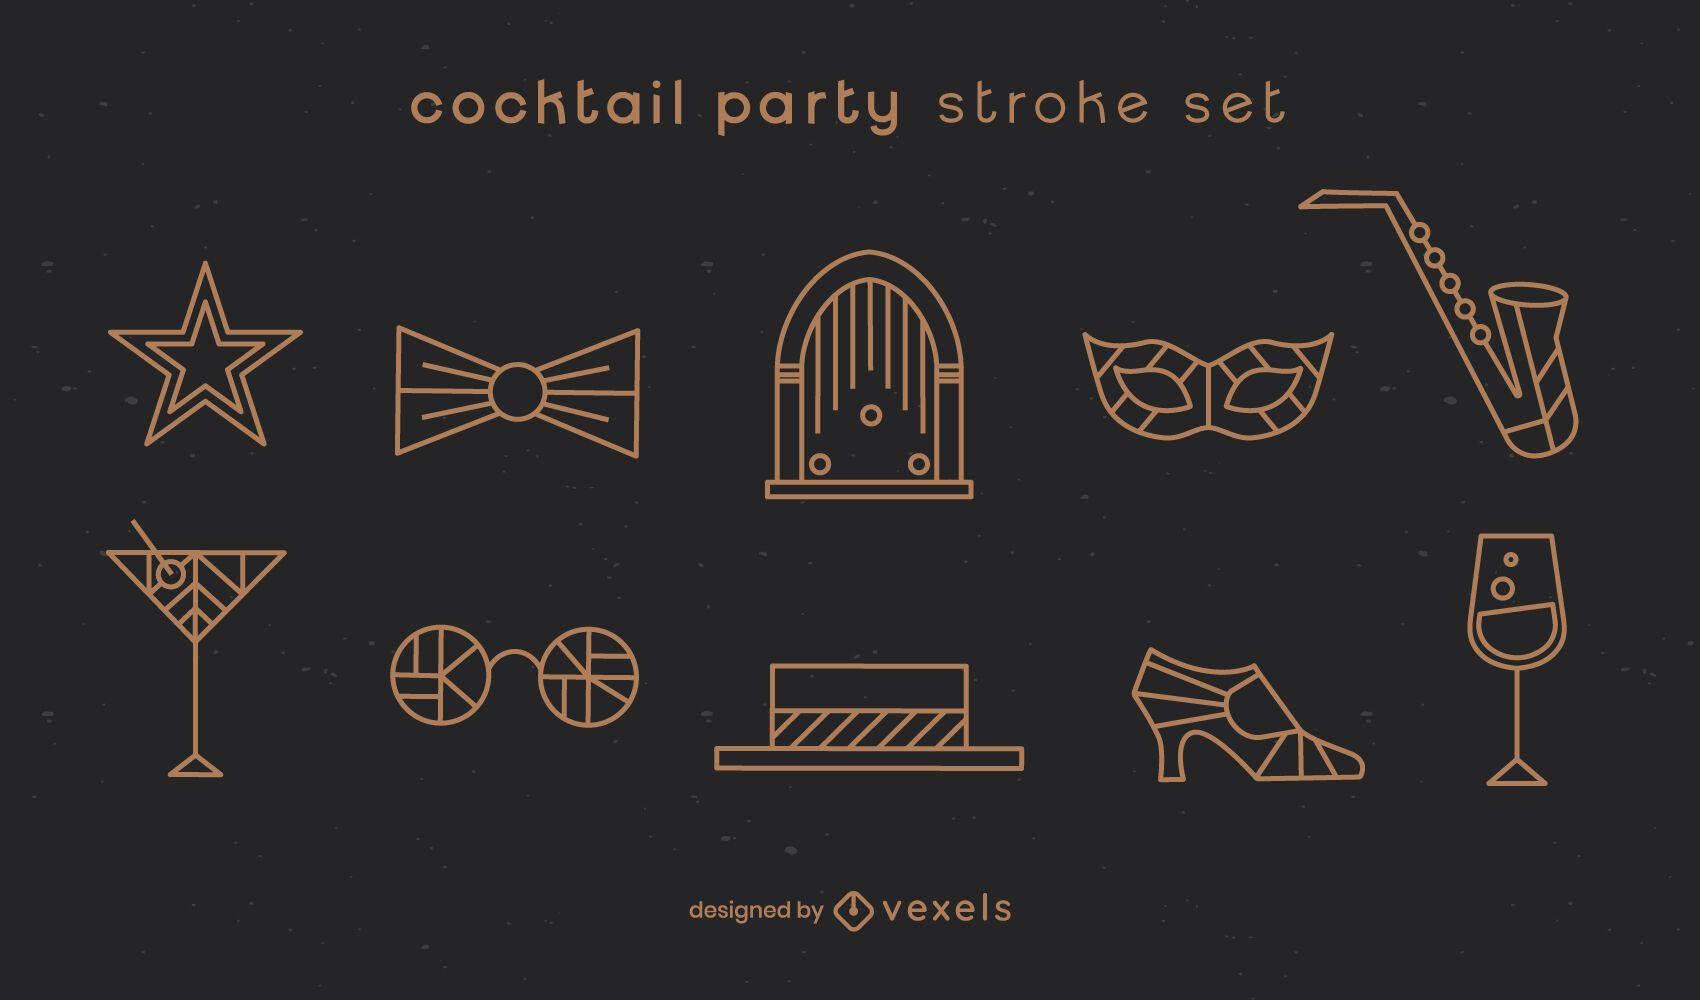 Cocktail party stroke set